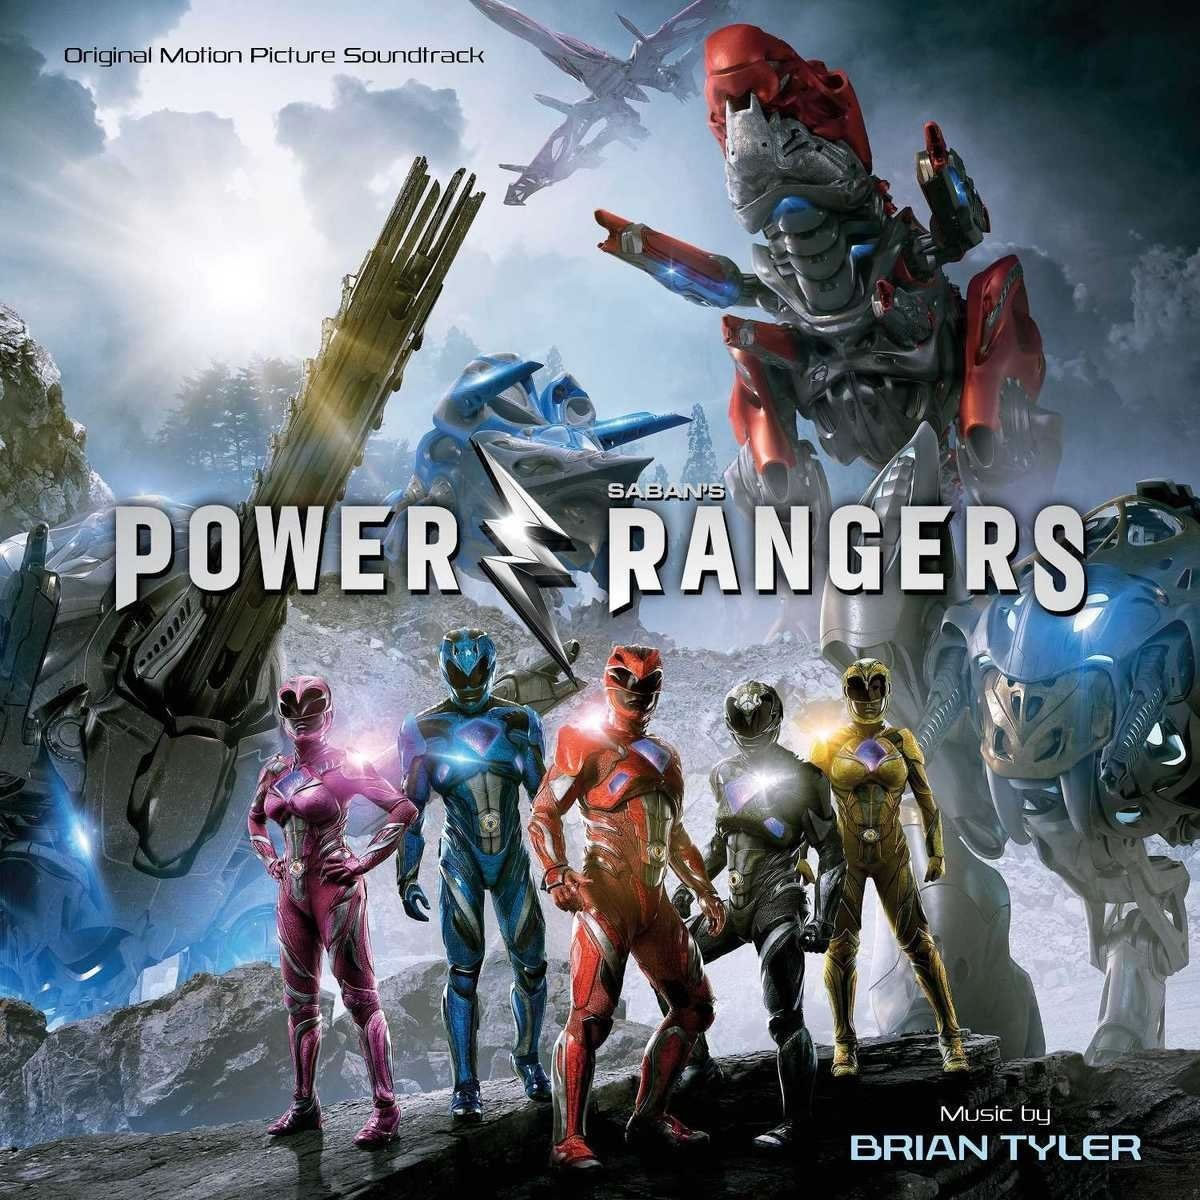 POWER RANGERS - ORIGINAL MOTION PICTURE SOUNDTRACK (AUDIO CD)